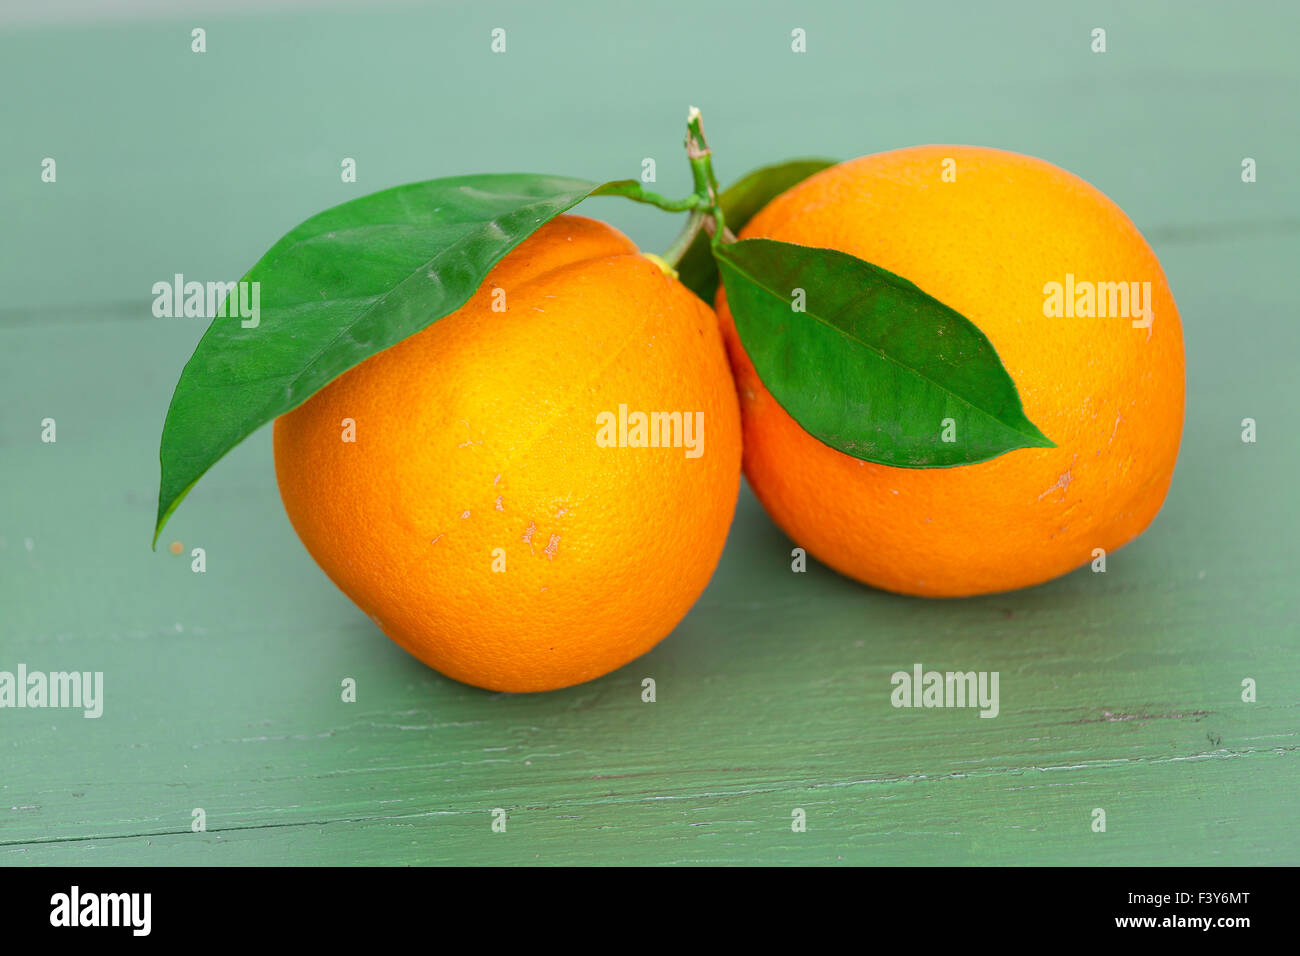 Two big Oranges with Leaves - Stock Image